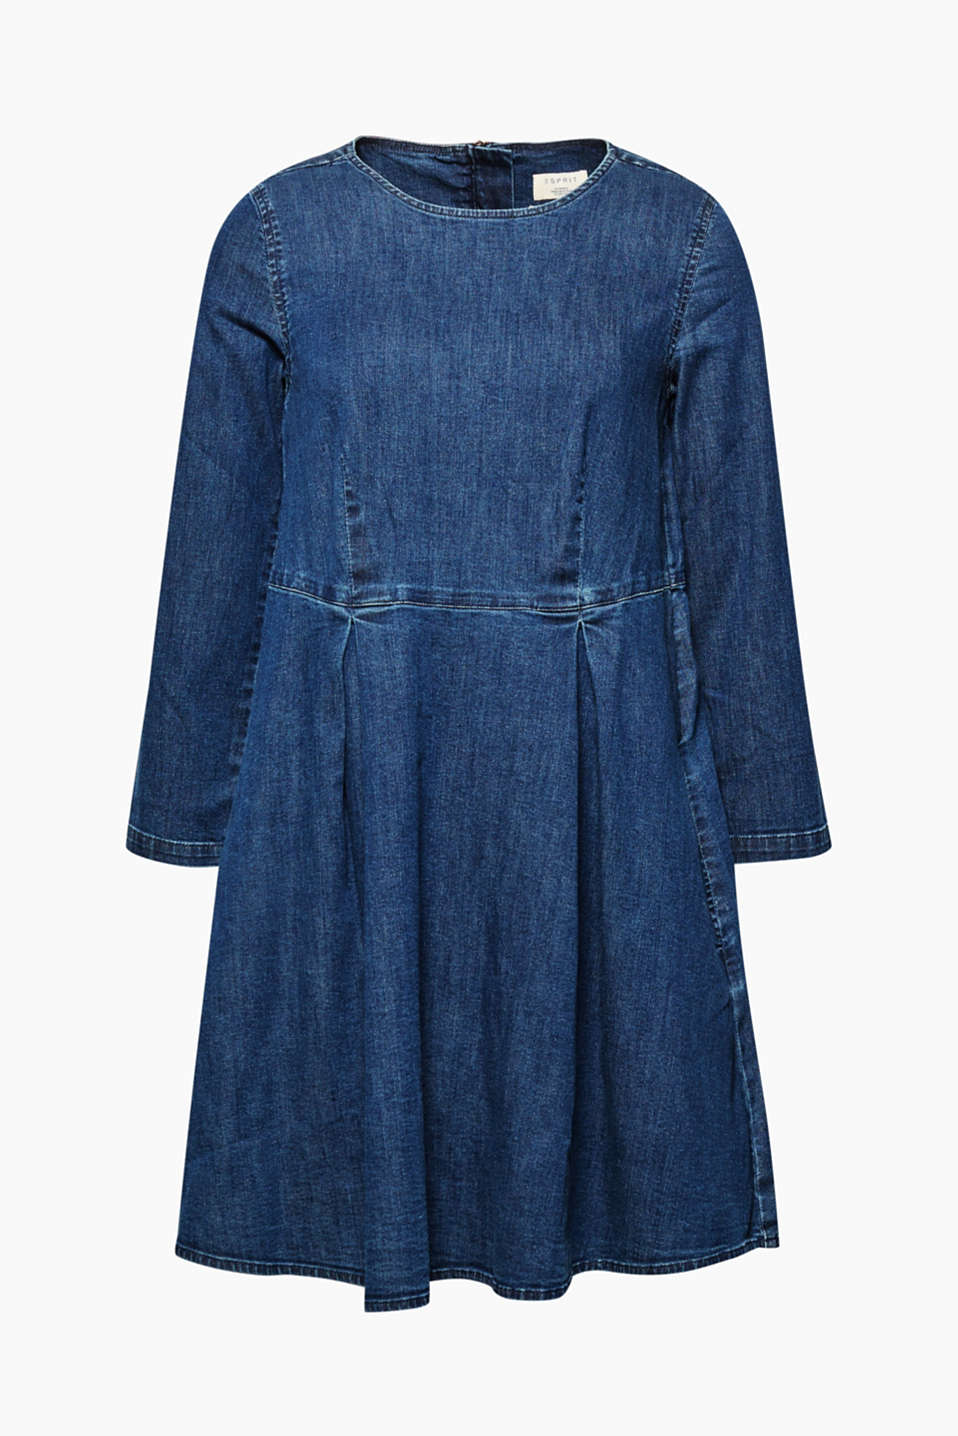 We love denim! This dress features a flared skirt and is crafted from authentic denim.